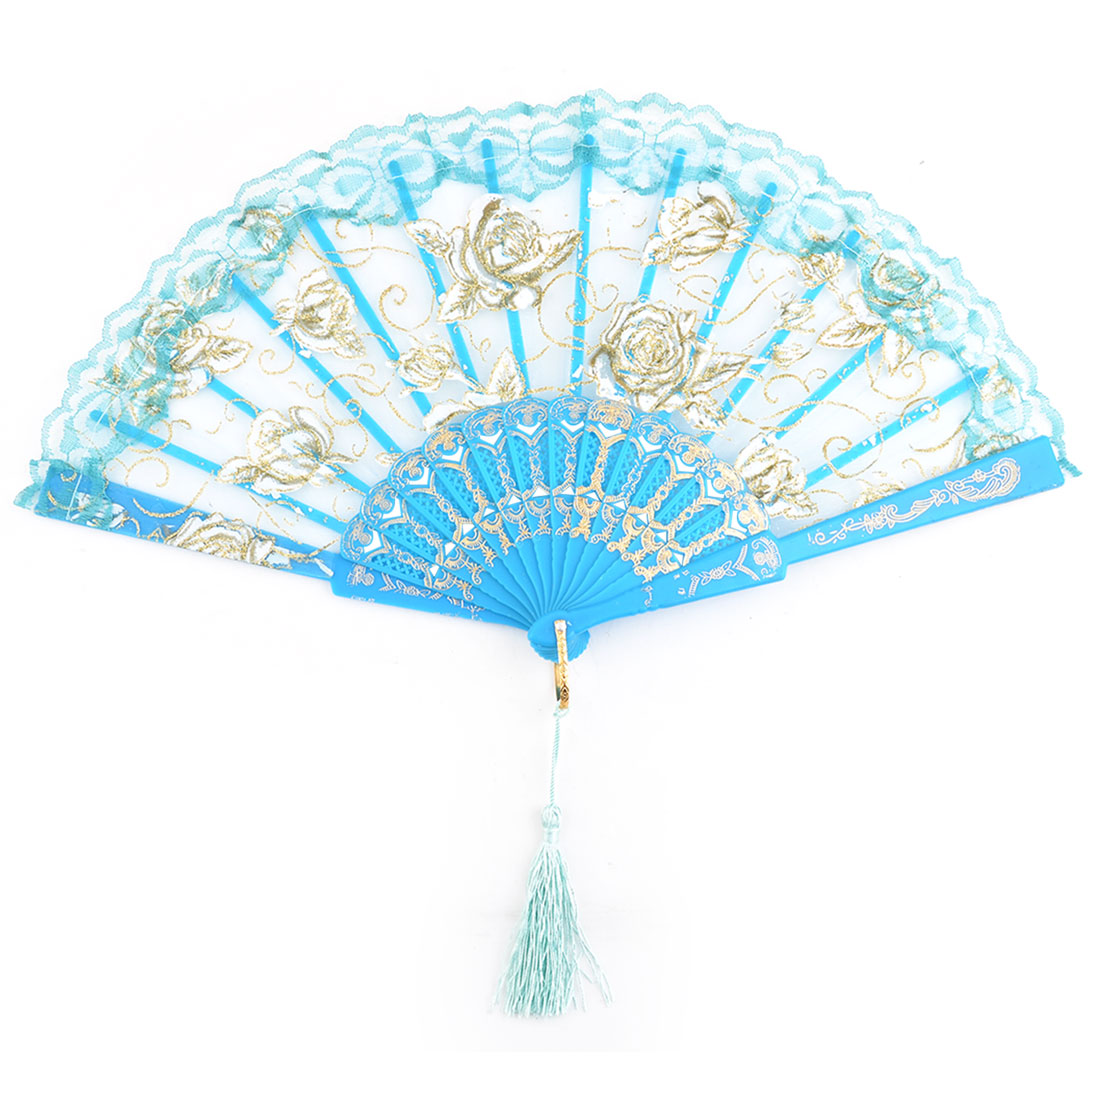 Women Dancer Plastic Frame Rose Pattern Folding Dancing Hand Fan Blue 23.8cm Length